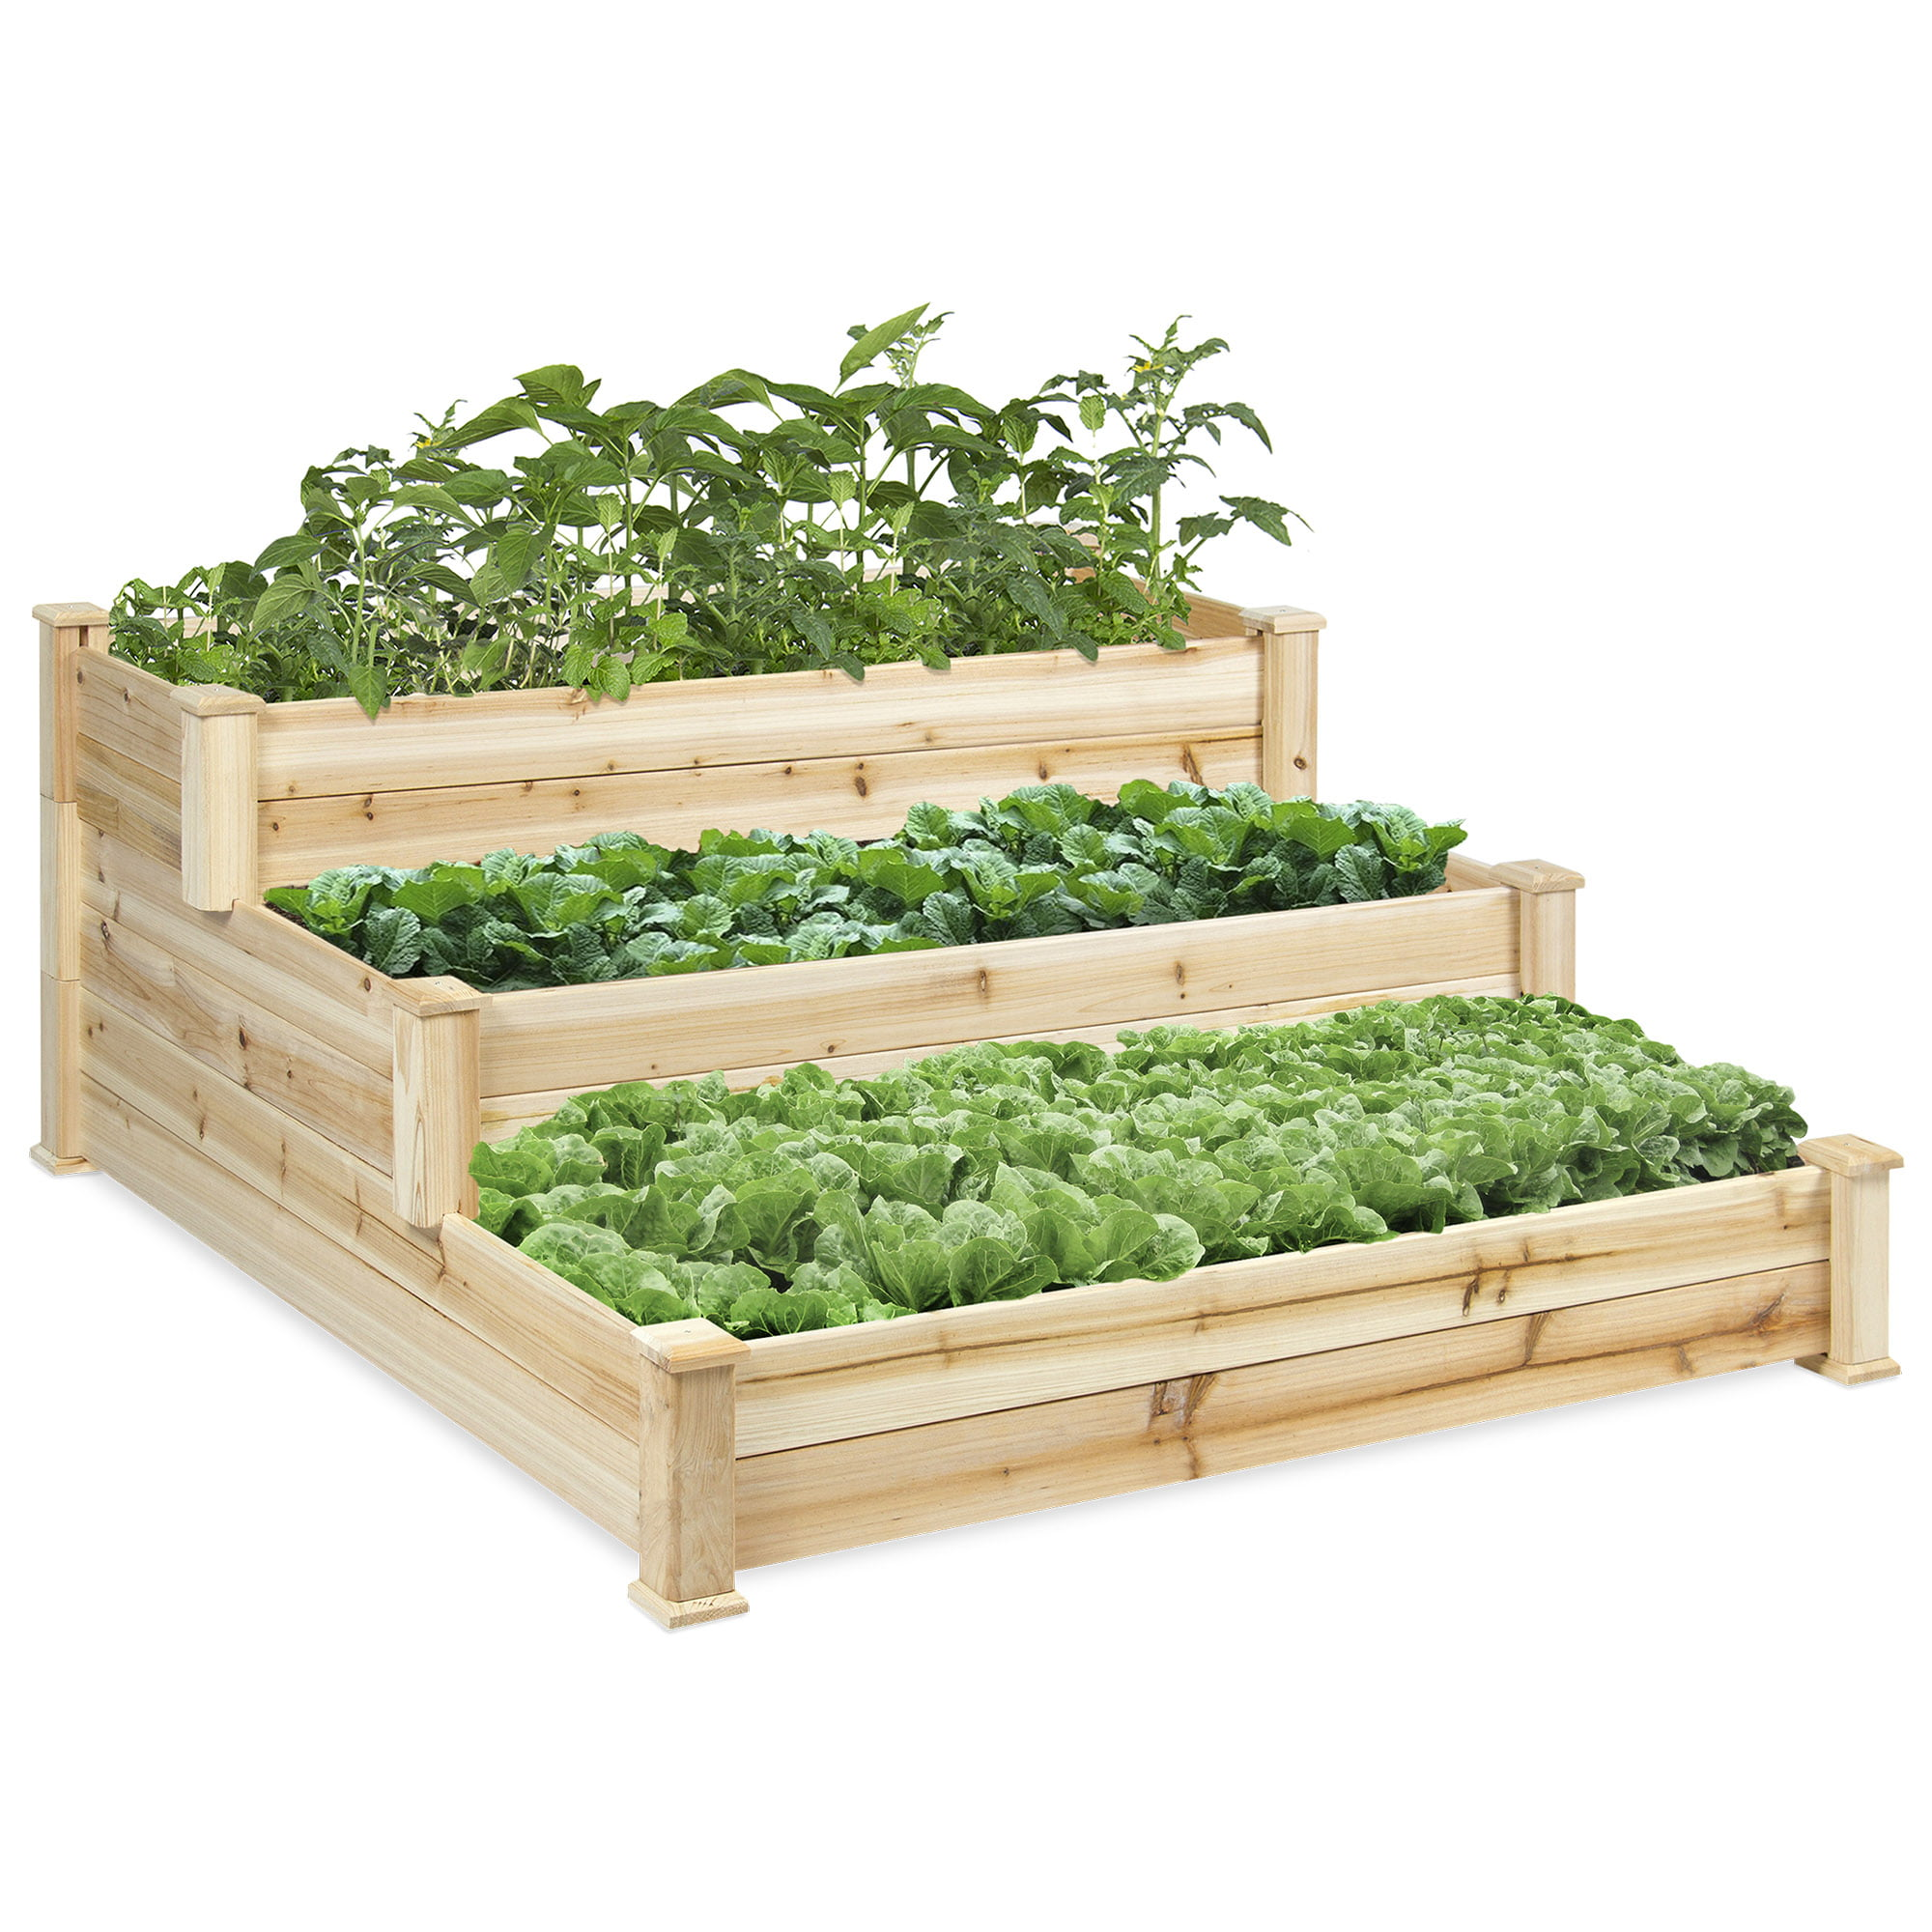 Best Choice Products 3-Tier Wooden Raised Vegetable Garden